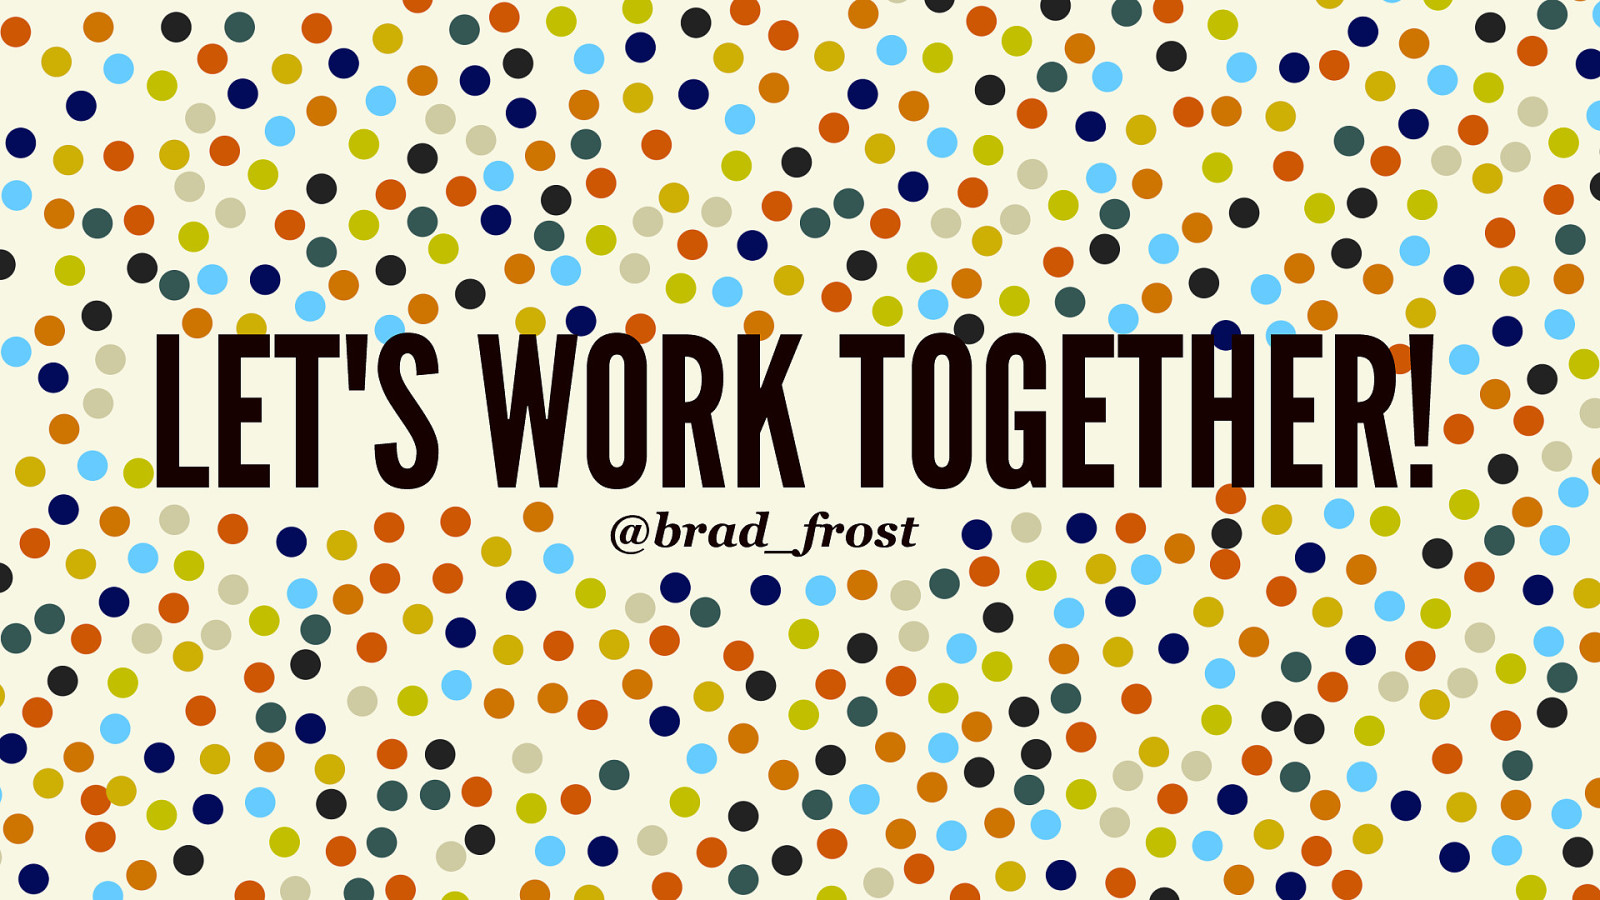 Let's Work Together!